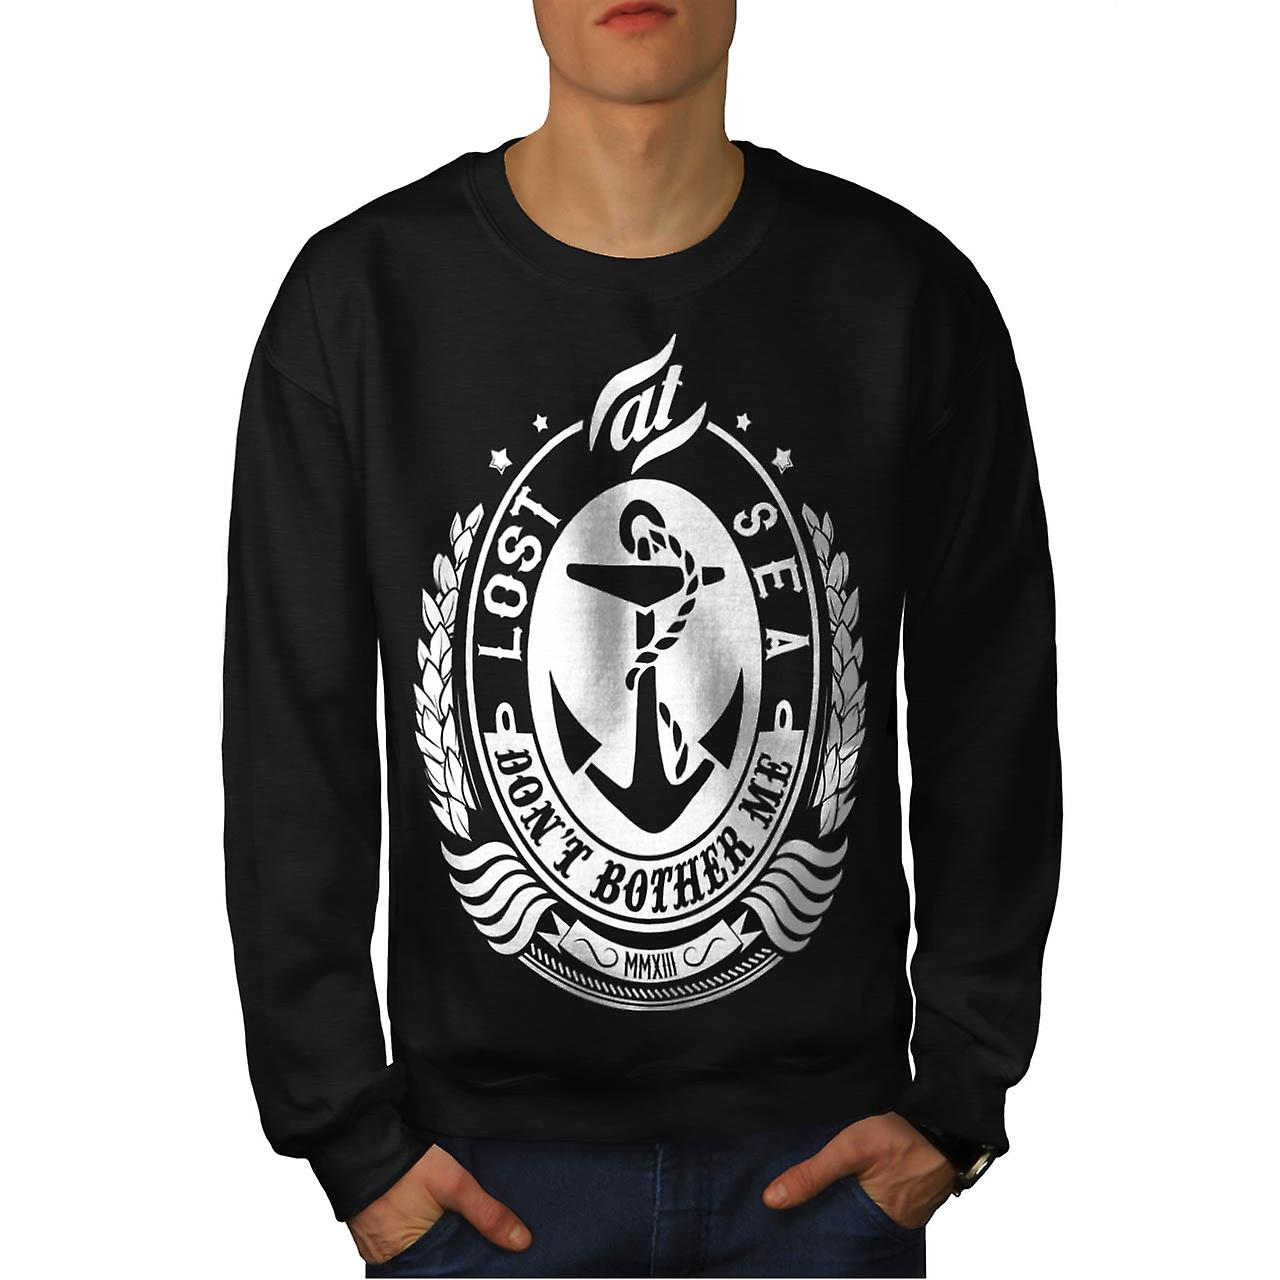 Don't Bother Me Slogan Men Black Sweatshirt | Wellcoda